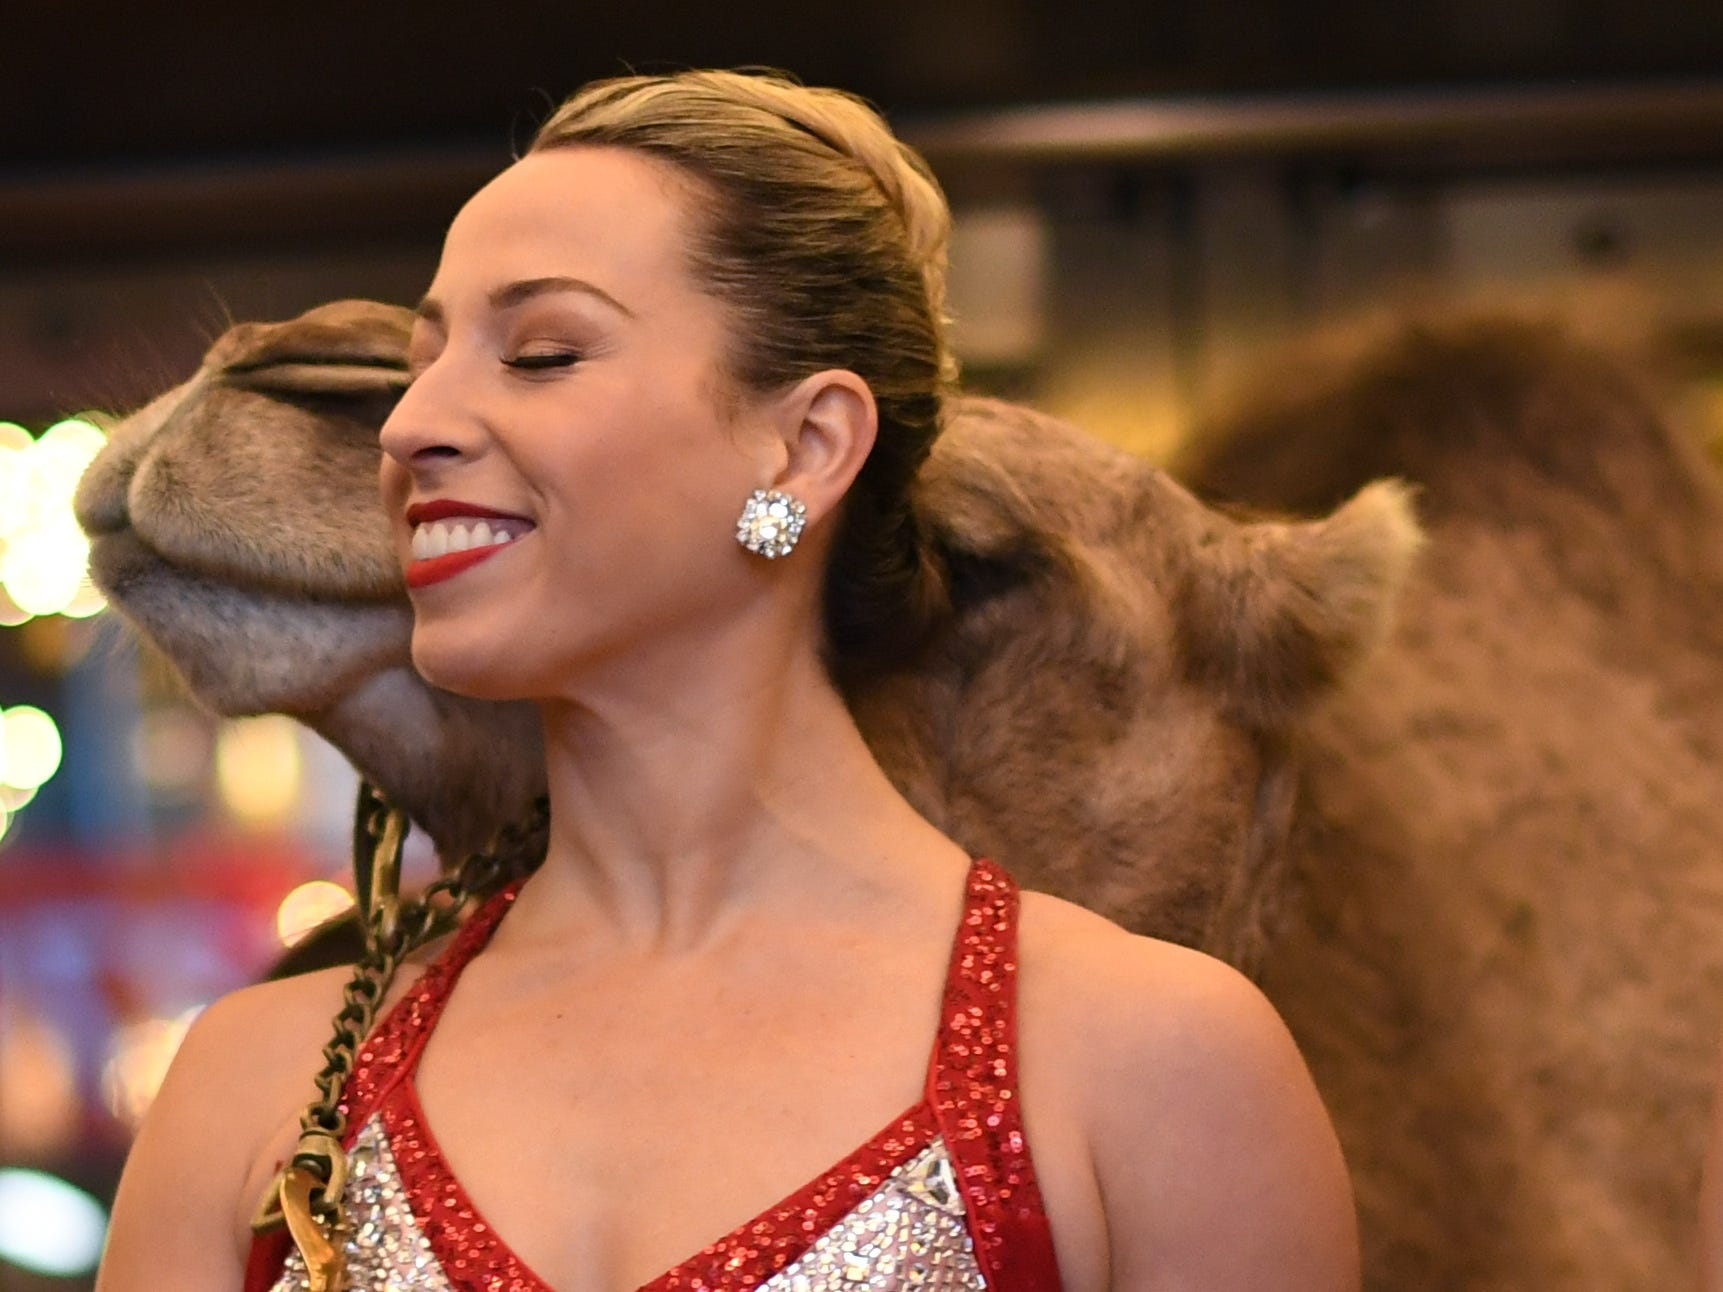 Radio City Rockette's  Lauren Gibbs poses with camels as the Radio City Rockettes  welcome the camels, sheep and donkey back to Radio City Music Hall November 5, 2018 for their starring role in the Living Nativity scene in the 2018 production of the Christmas Spectacular Starring the Radio City Rockettes. (Photo by TIMOTHY A. CLARY / AFP)TIMOTHY A. CLARY/AFP/Getty Images